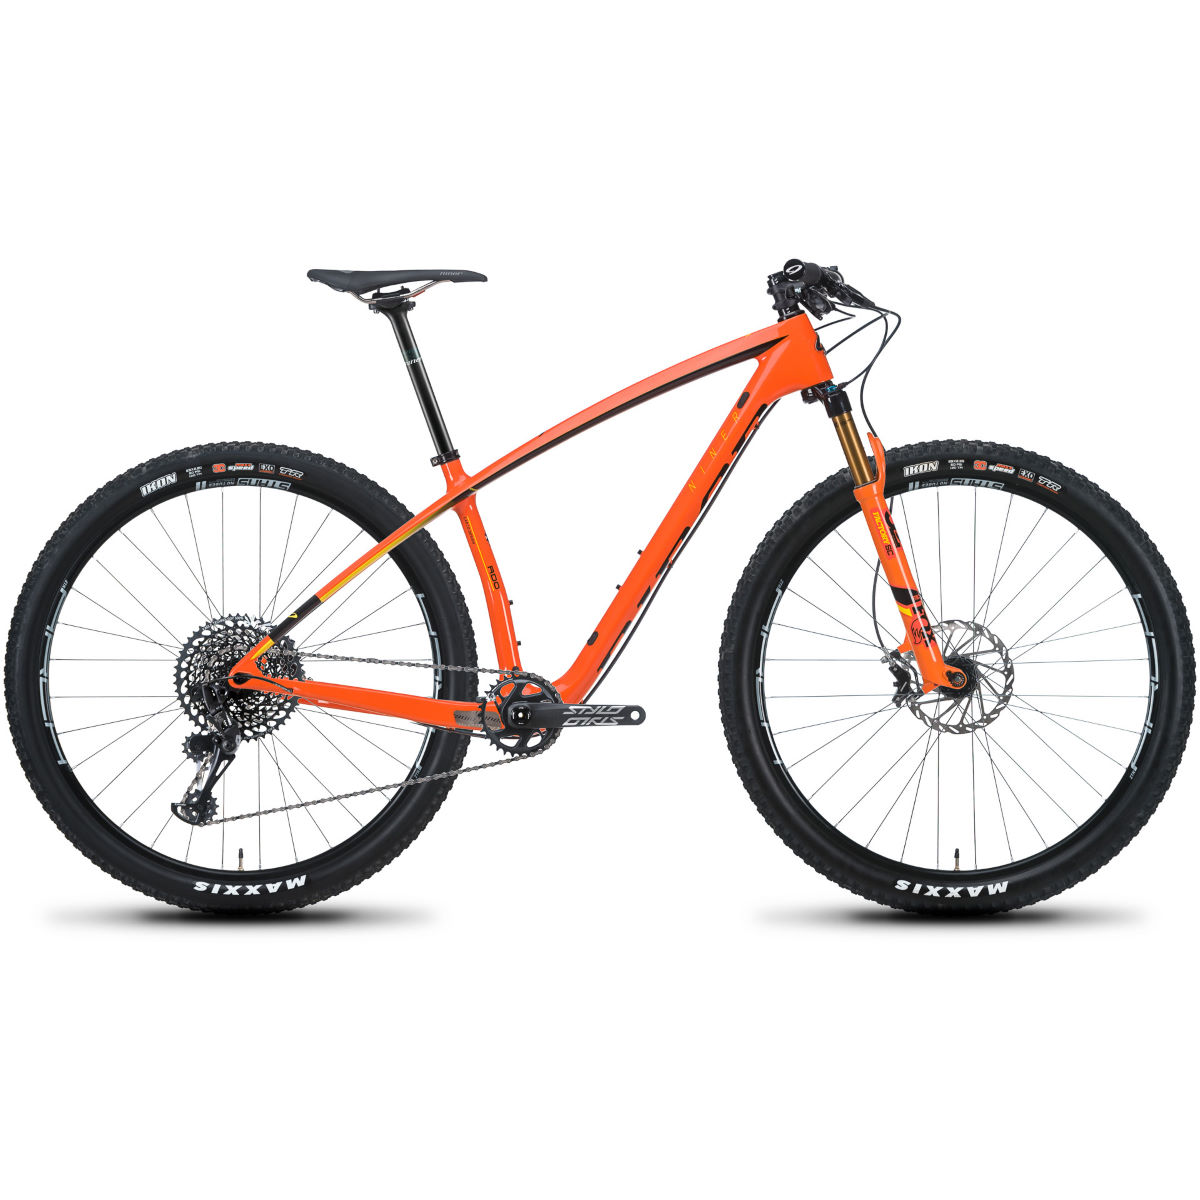 Niner AIR 9 RDO 3-Star